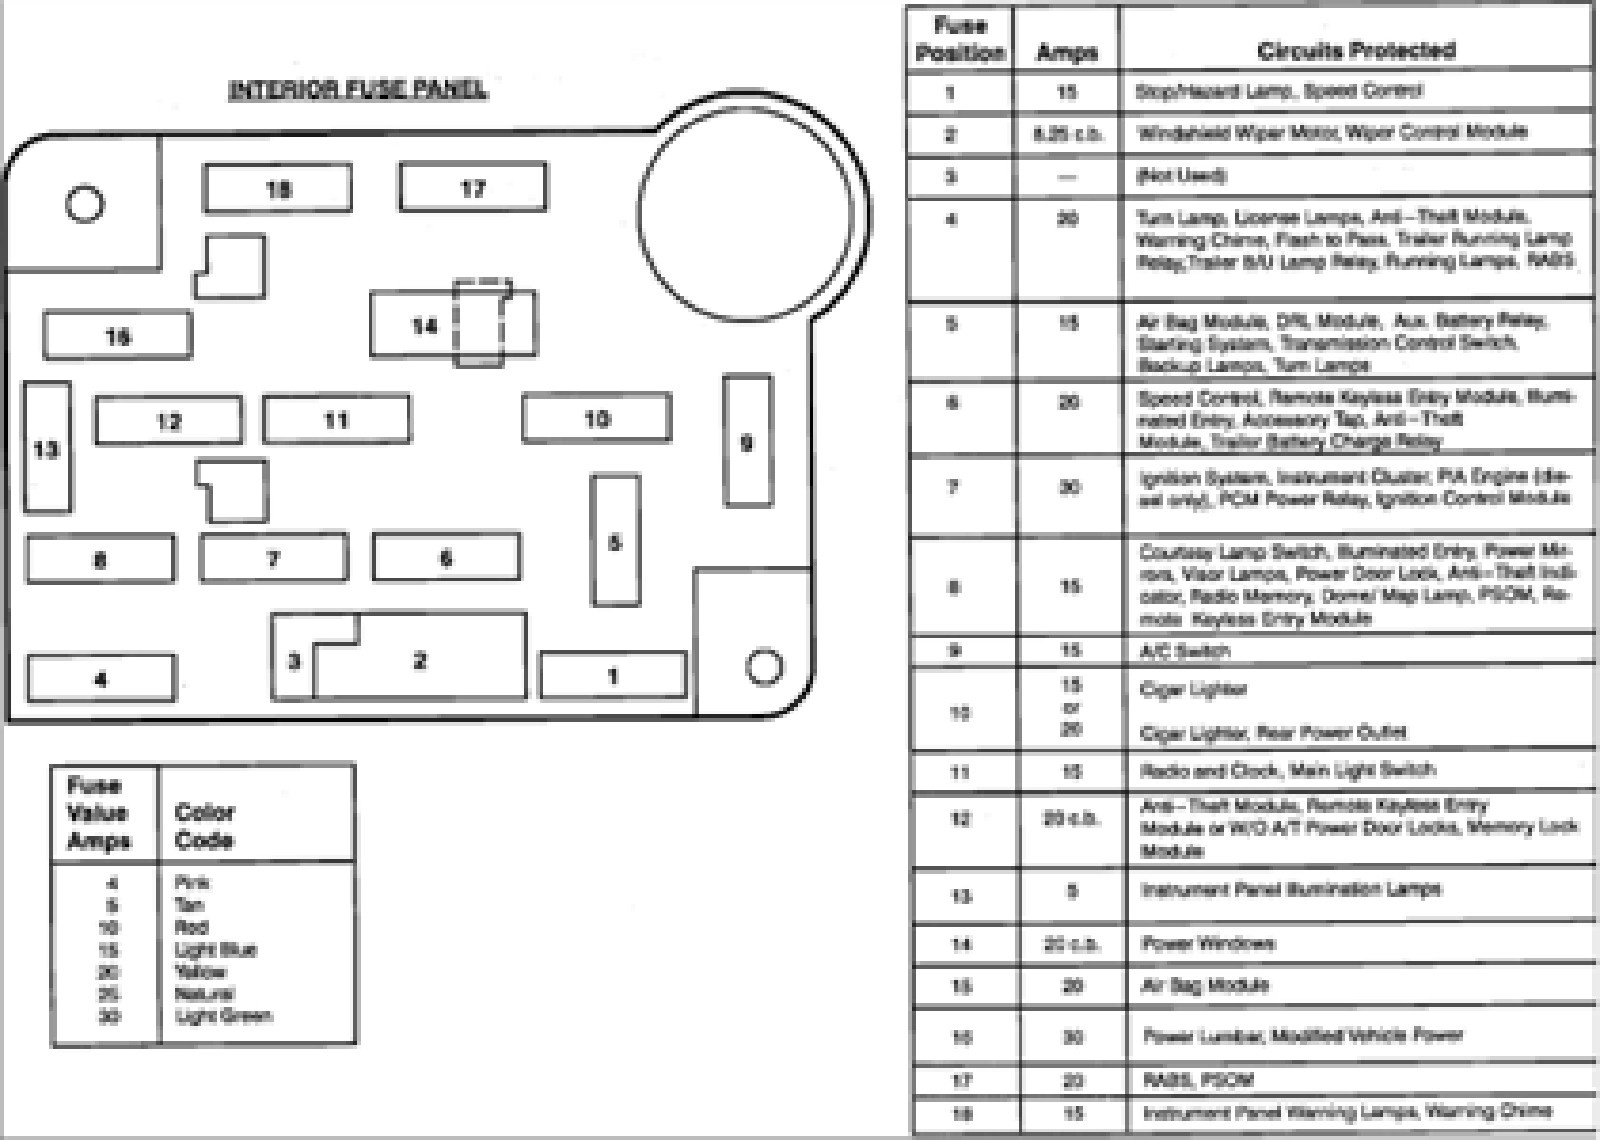 91 Dodge D150 Fuse Box Wiring Diagram Detailed M880 88 Data Speaker